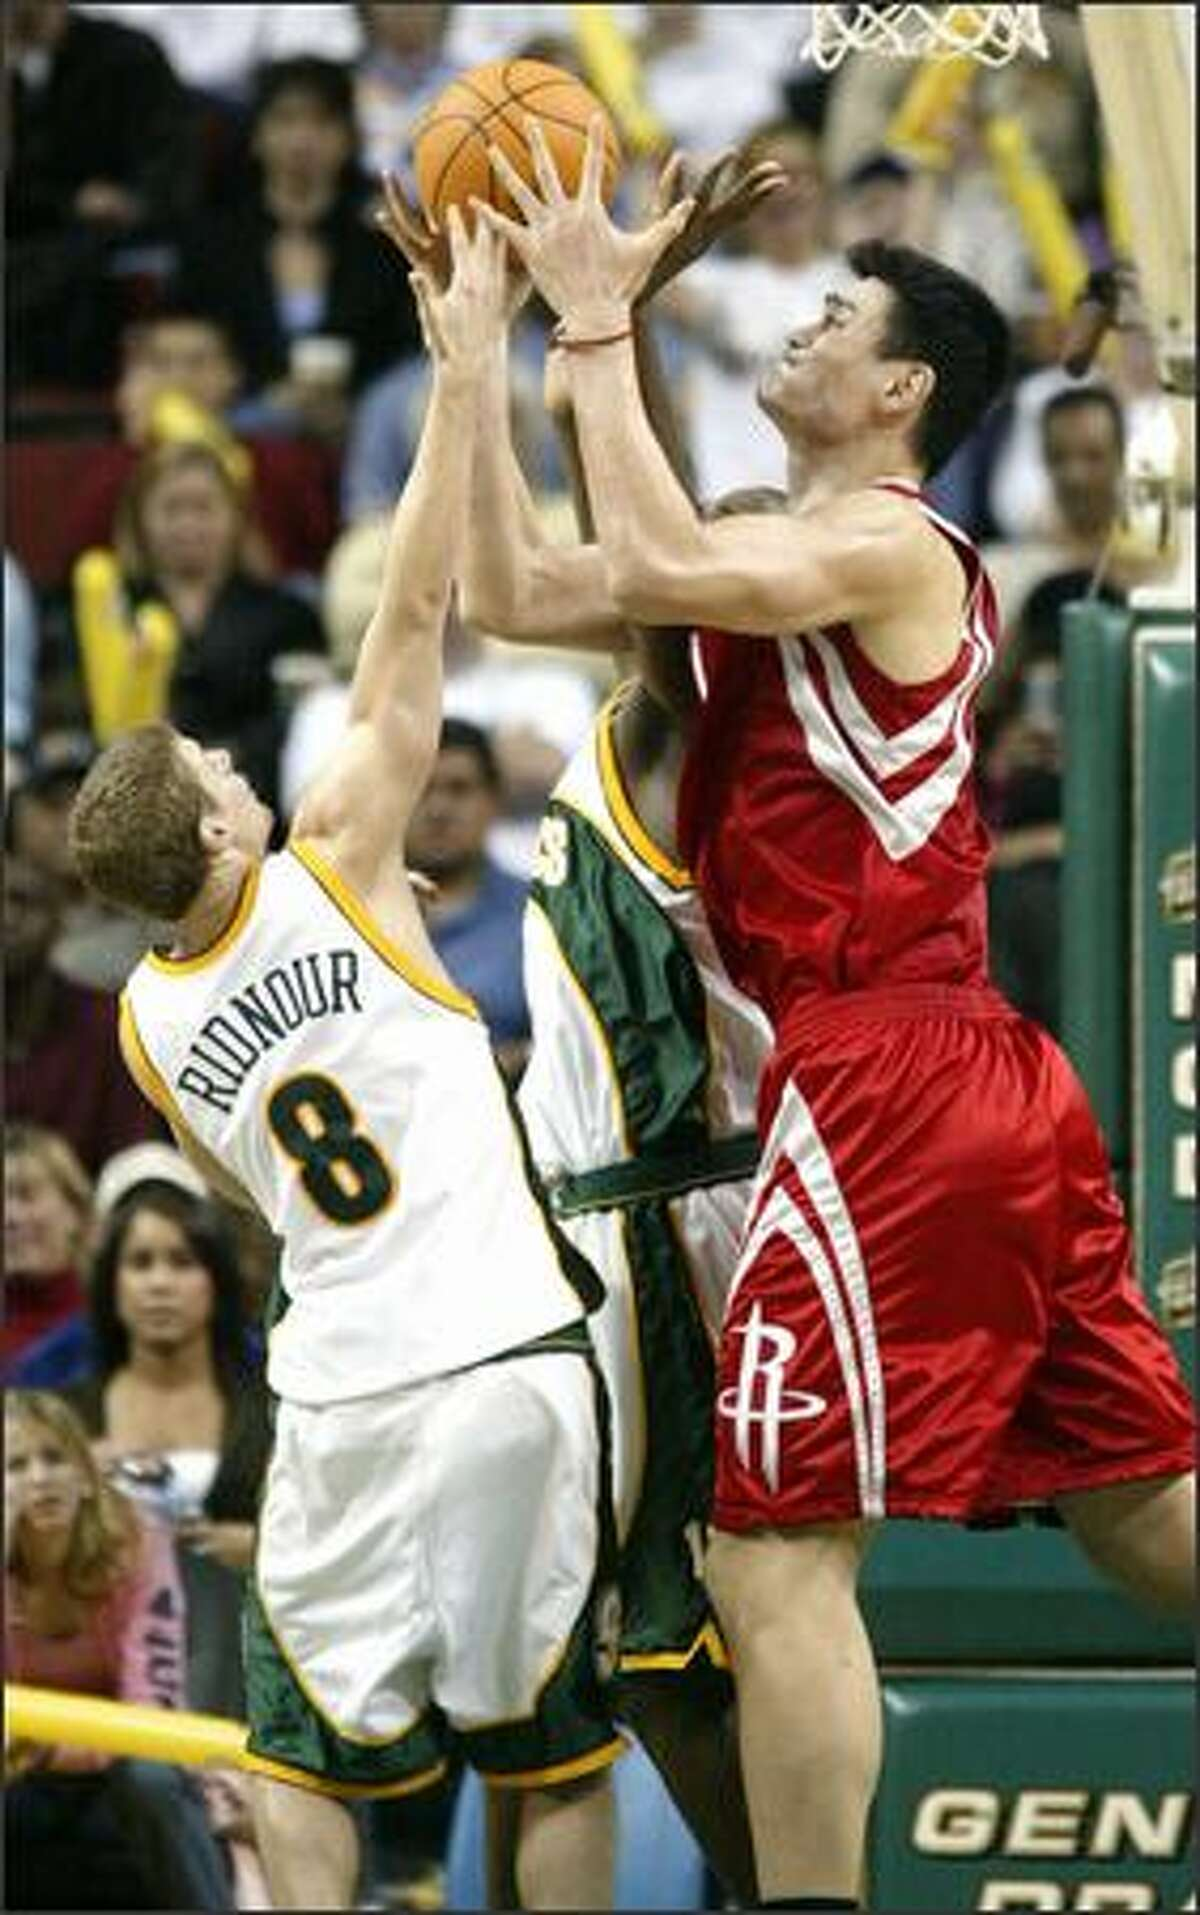 Enjoying a 16-inch height advantage, 7-foot-6 Yao Ming grabs a rebound from a straining Luke Ridnour. The Houston Rockets beat the Sonics 97-95.